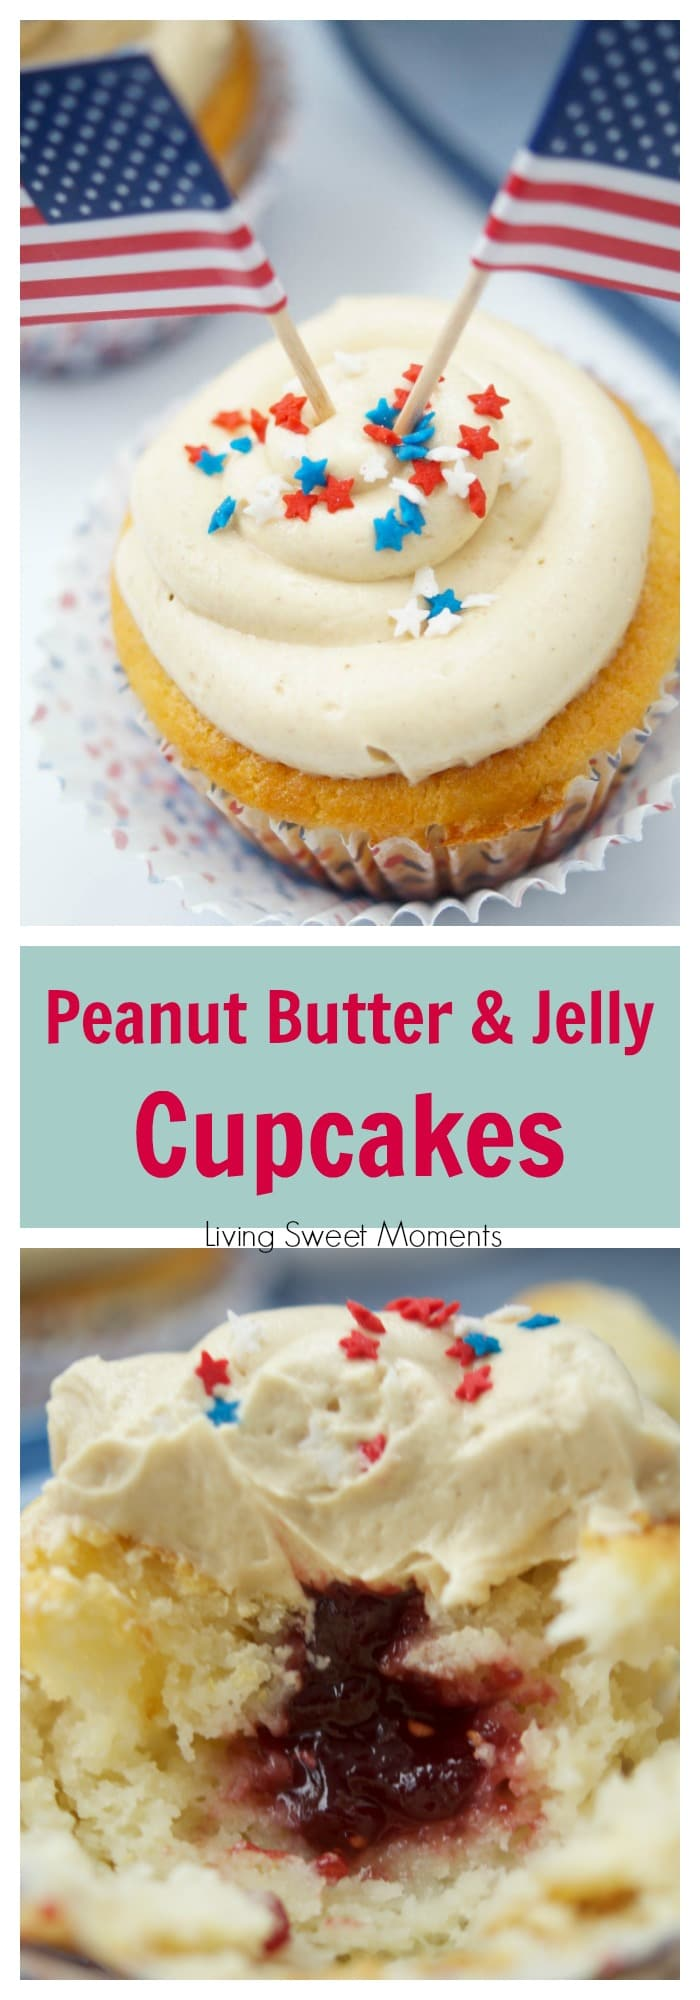 Peanut Butter And Jelly Cupcakes - delicious vanilla cupcakes filled with jelly and topped with peanut butter. The perfect dessert for any occasion.